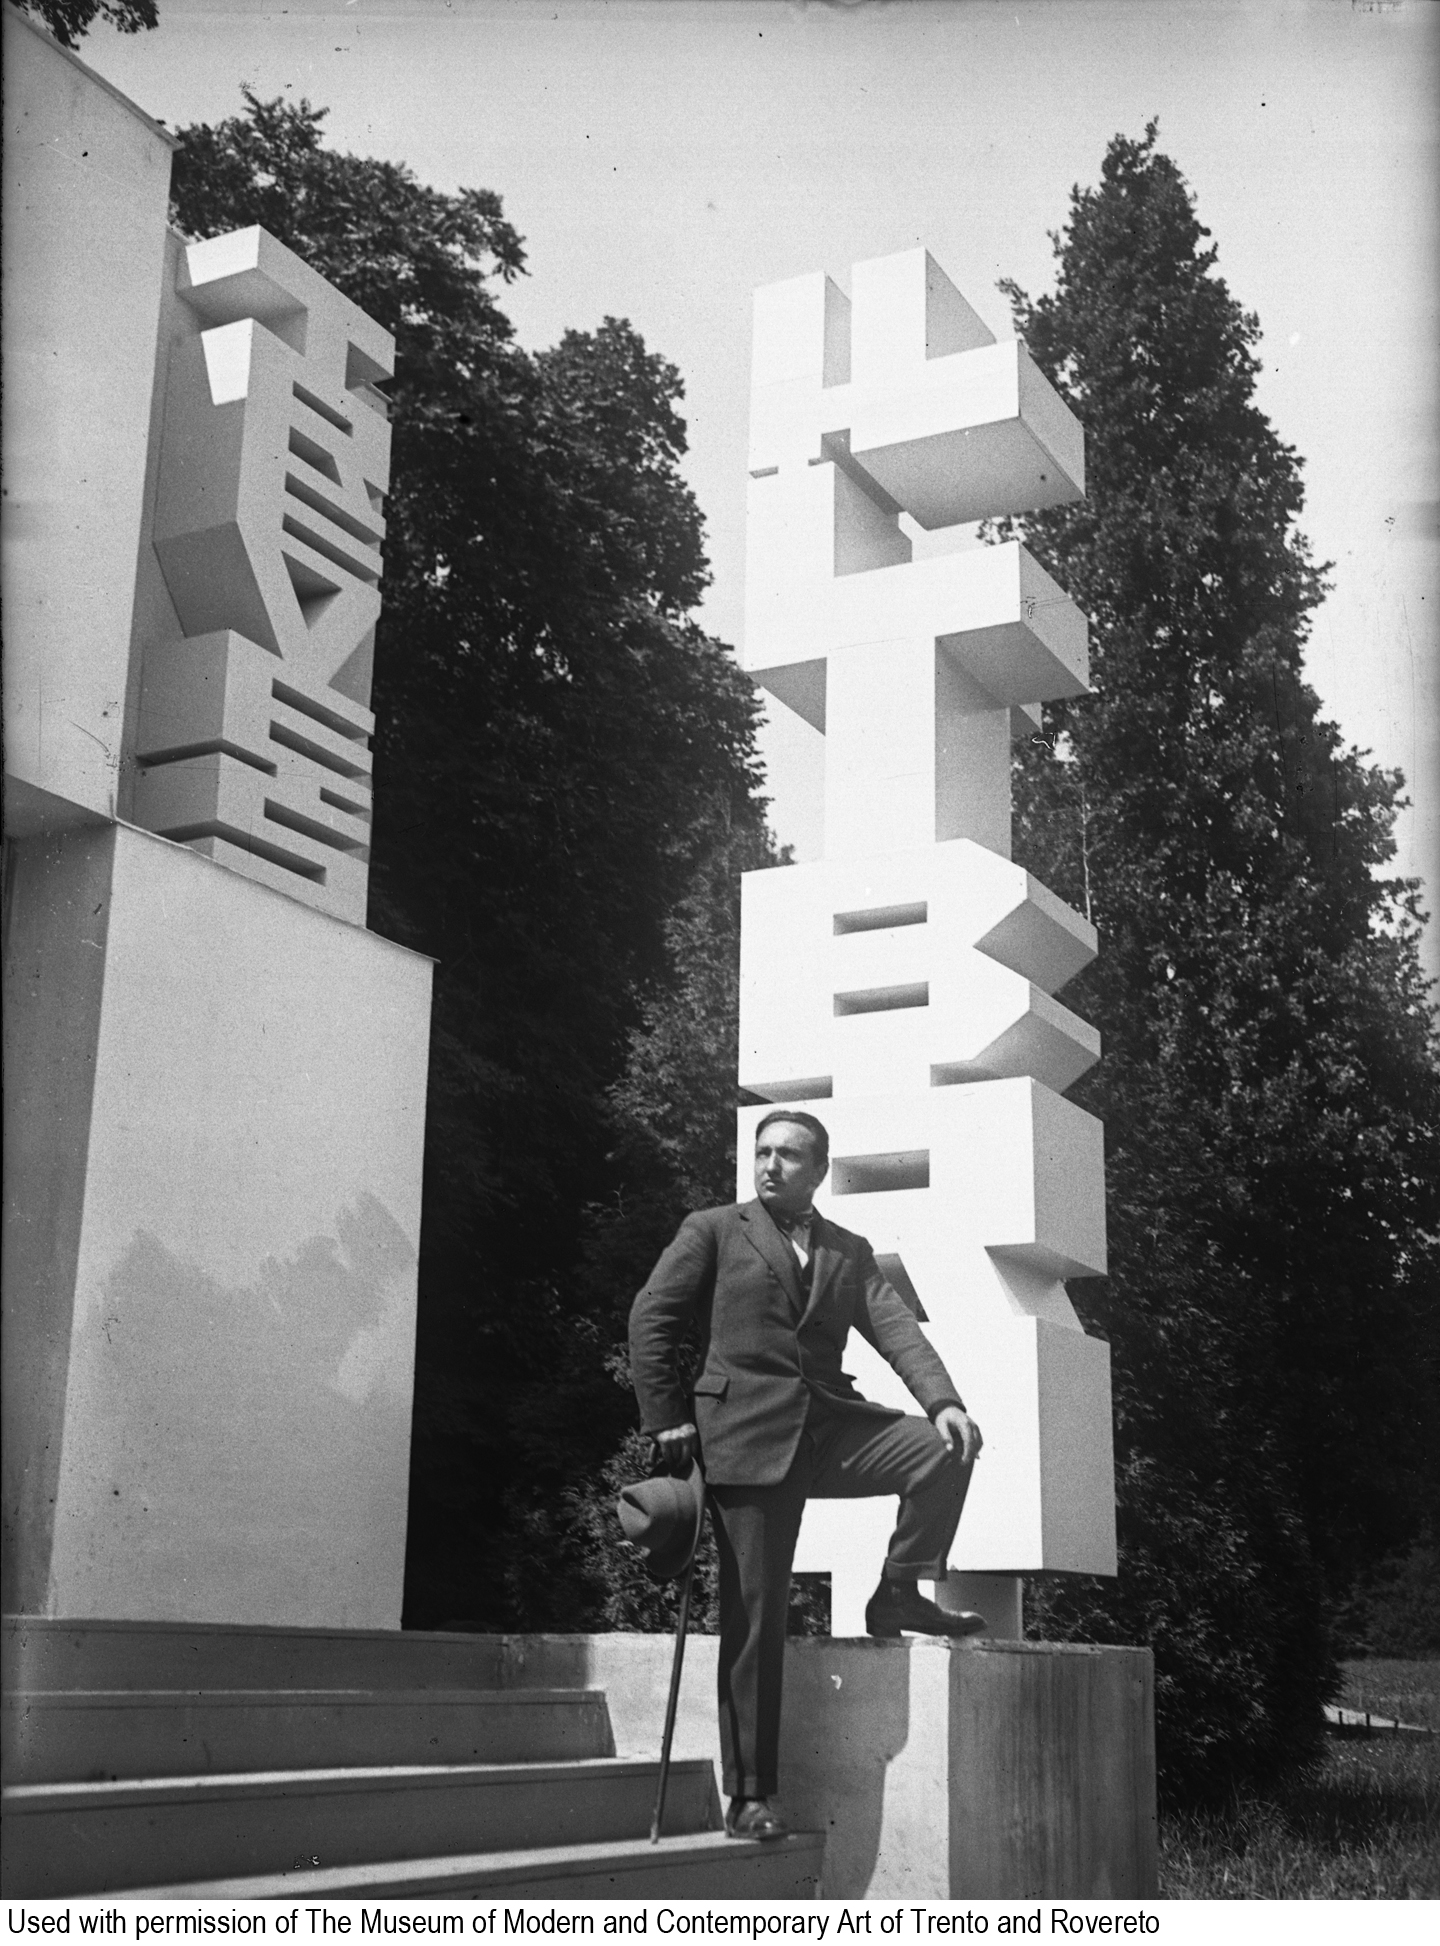 depero_posing_next_to_book_pavillion_with_credit